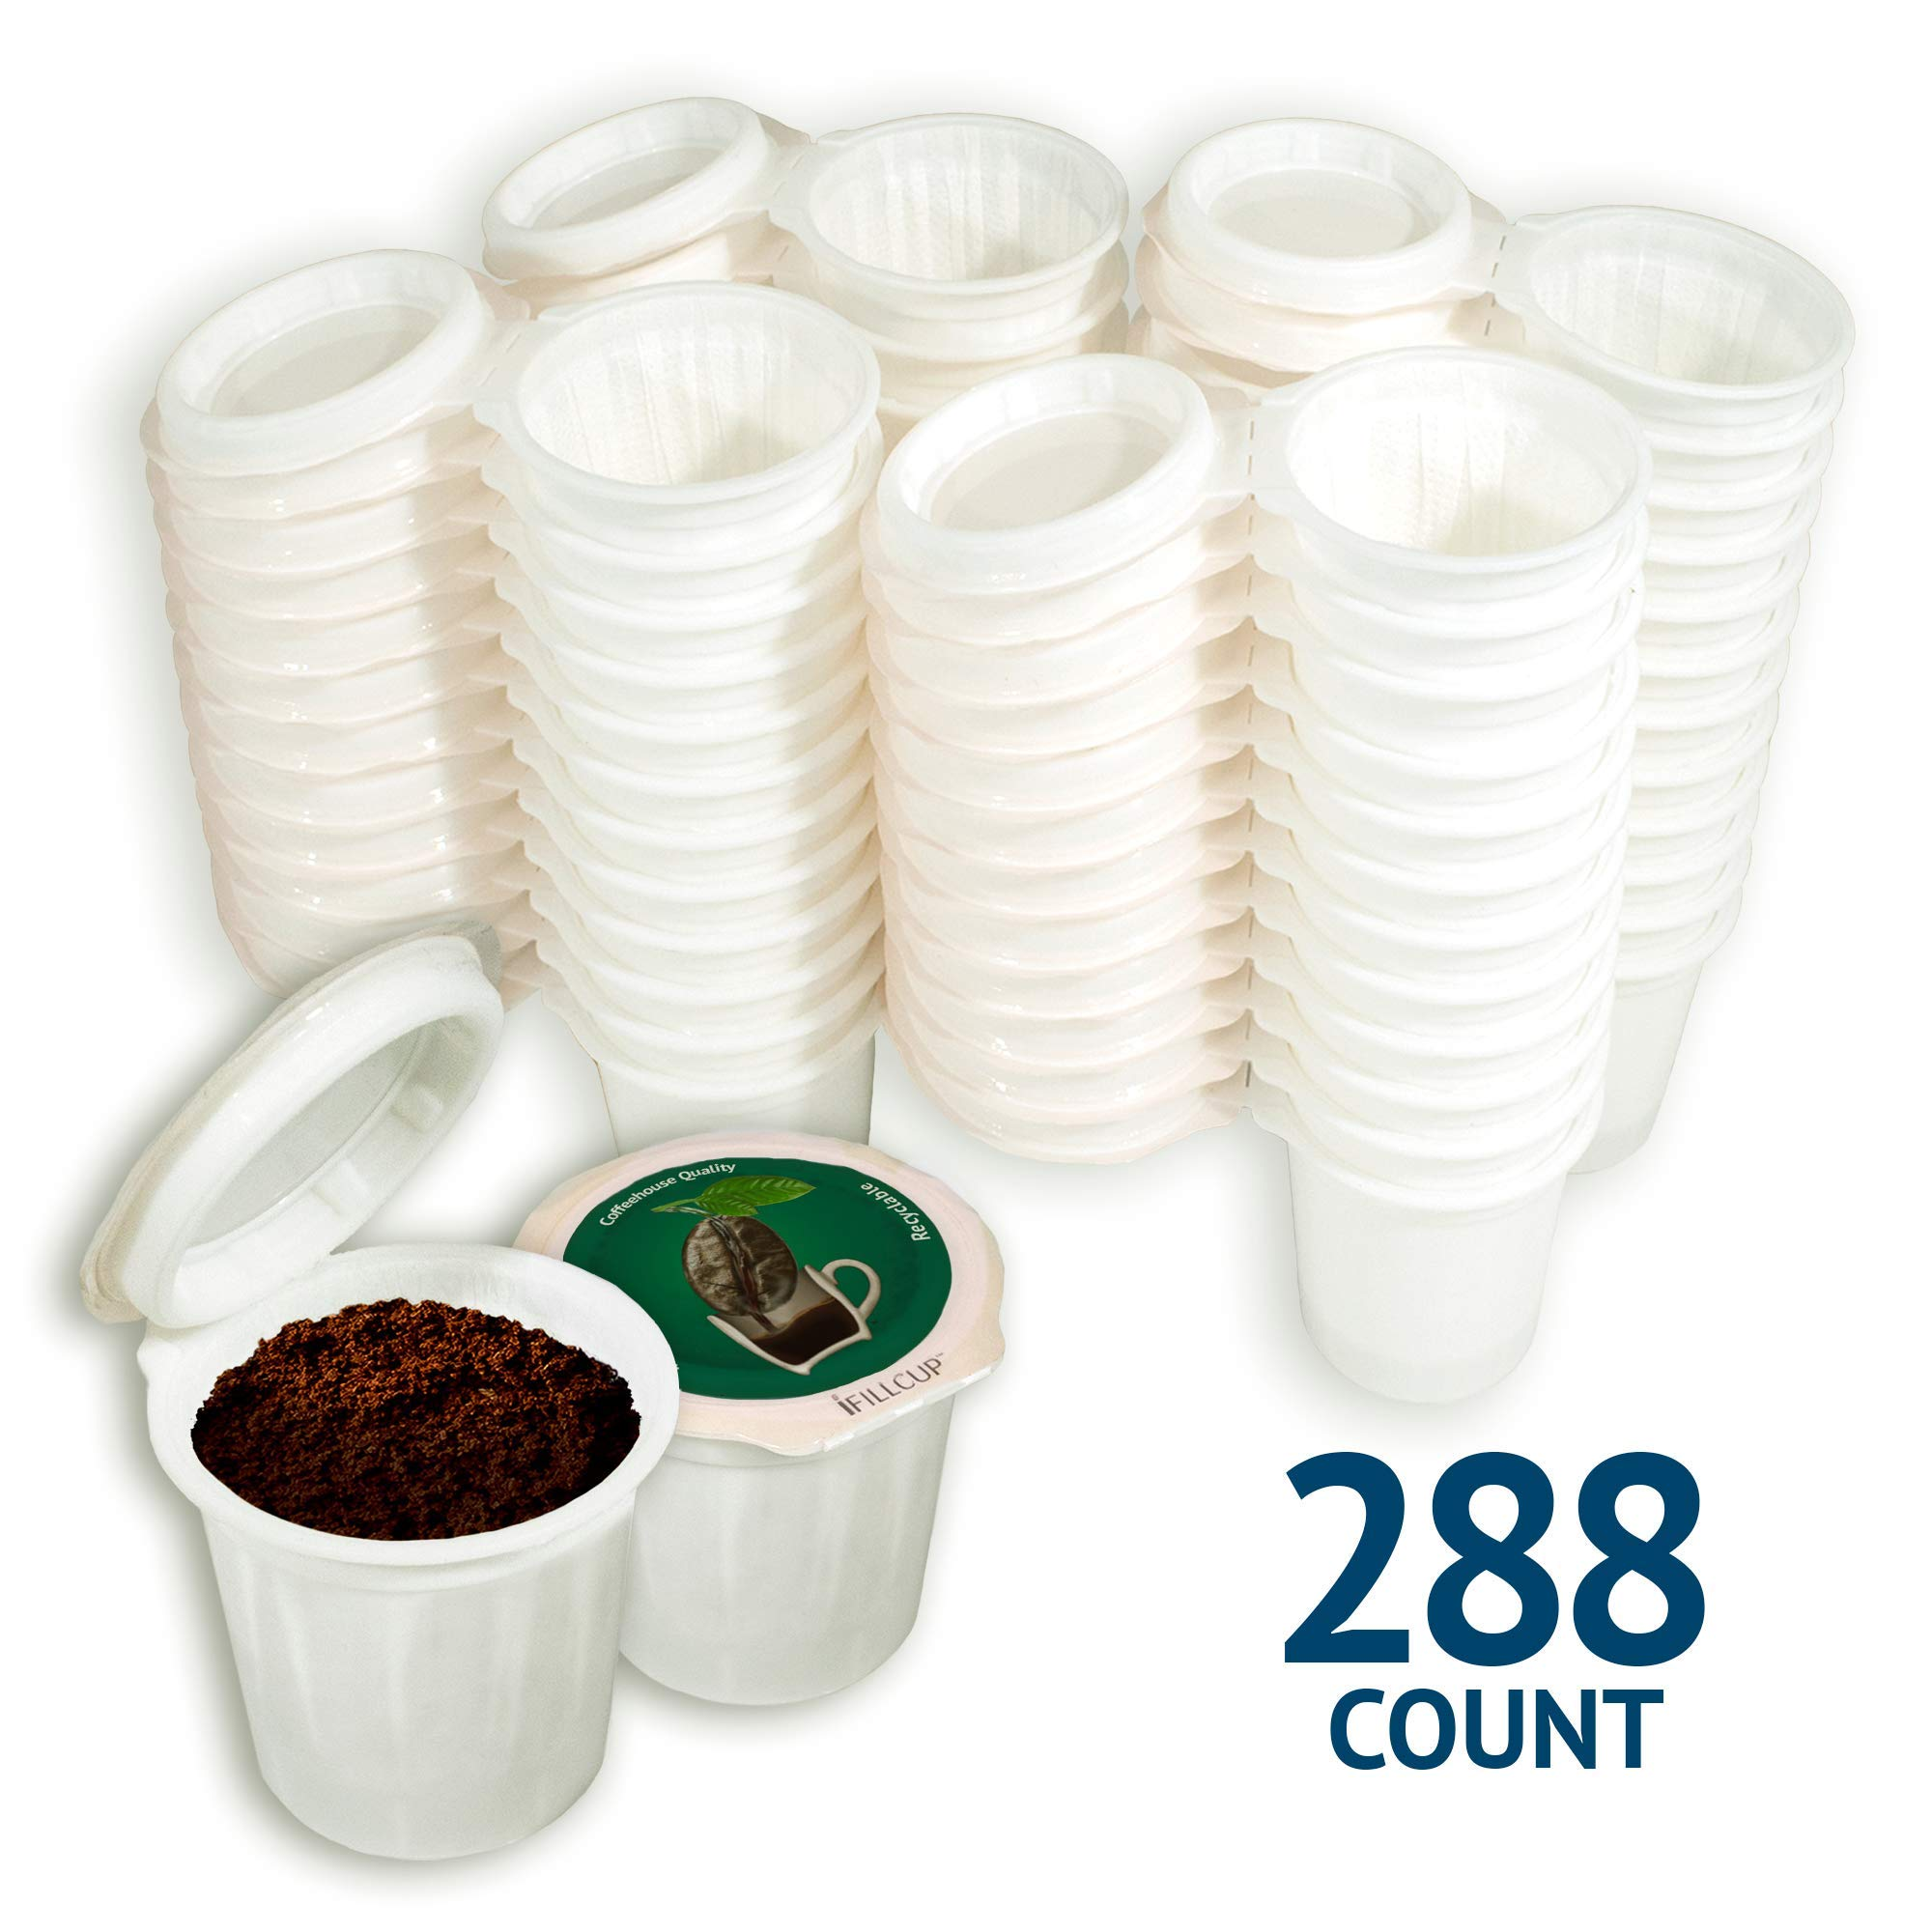 iFillCup pre-assembled Single Serve, Green, fill your own Pods. 100% recyclable for use in all k cup brewers including 1.0 & 2.0 Keurig. 288 iFill Cup airtight seal in freshness pods.